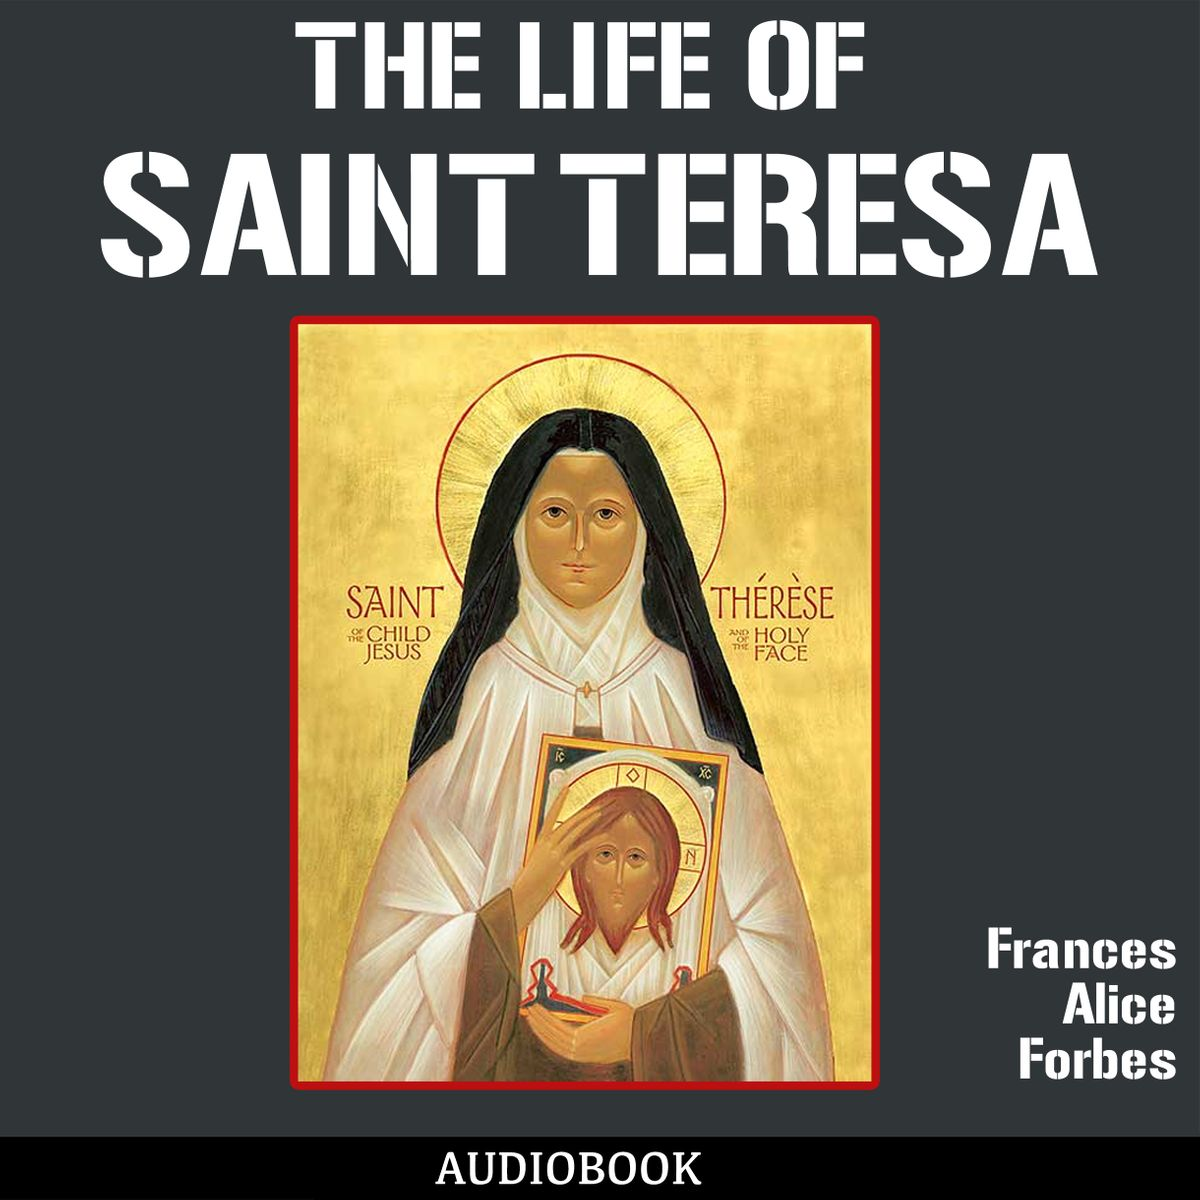 The Life of St. Teresa - Audiobook